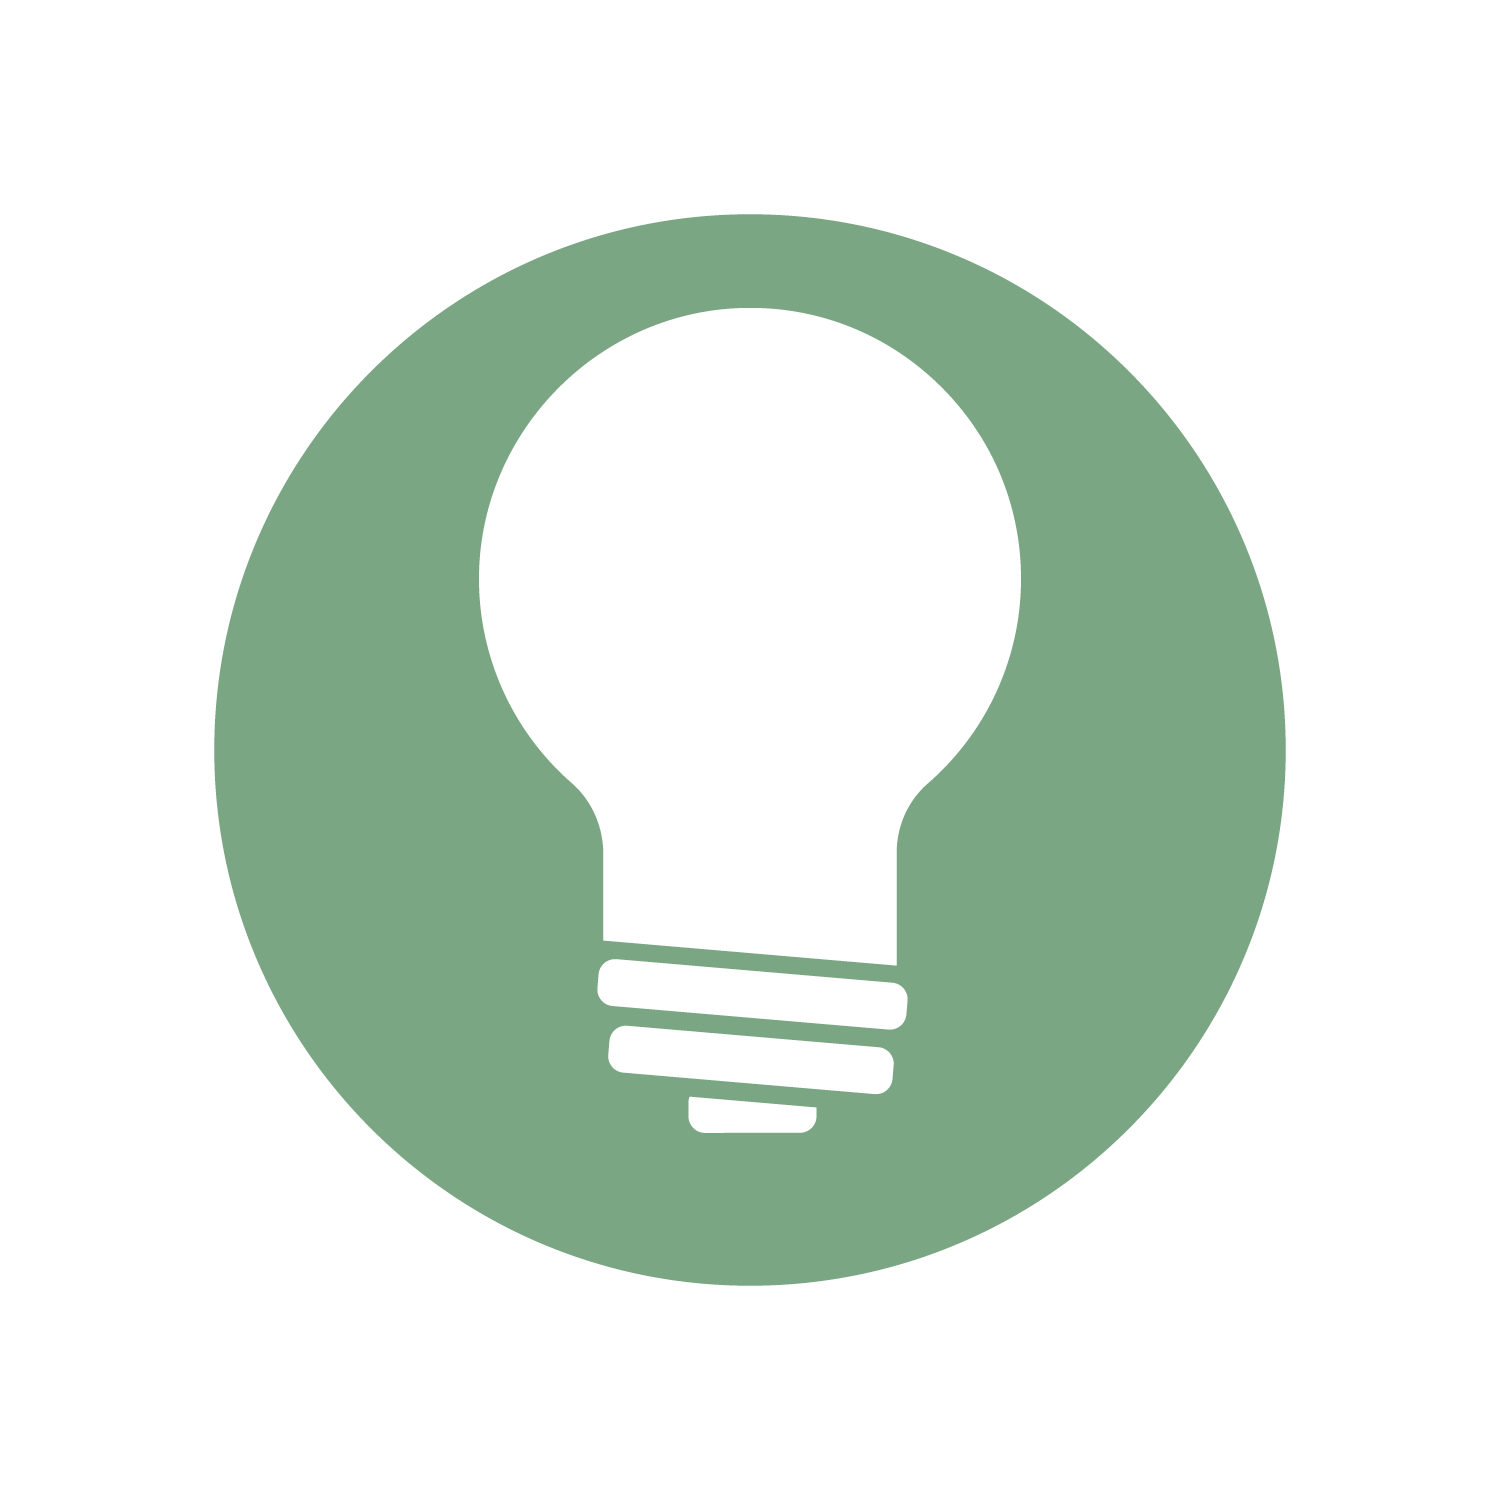 Lightbulb icon representing Consulting Services